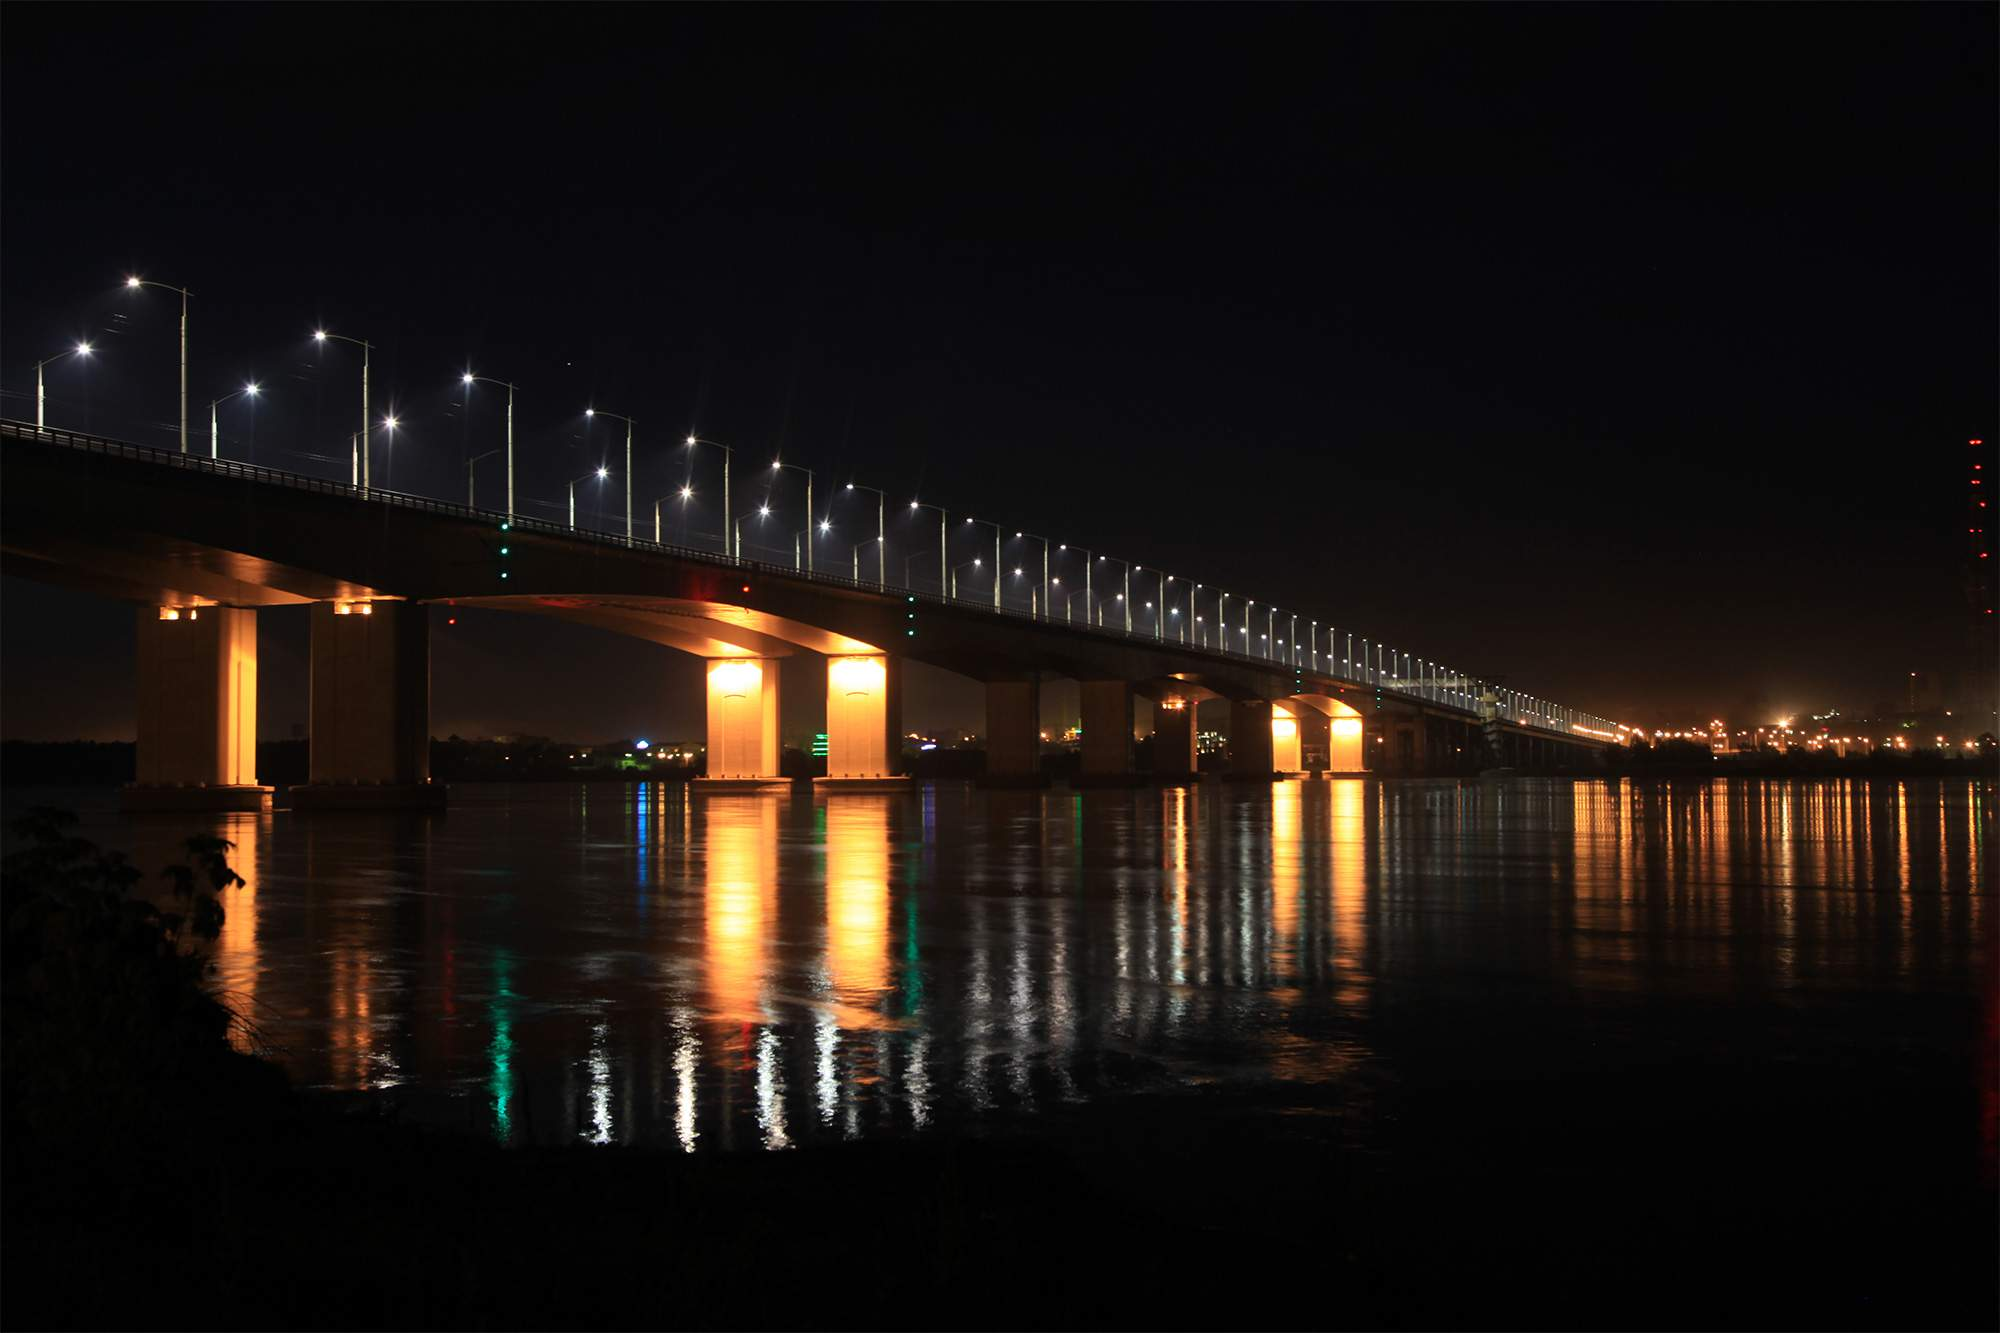 Irkutsk Bridge